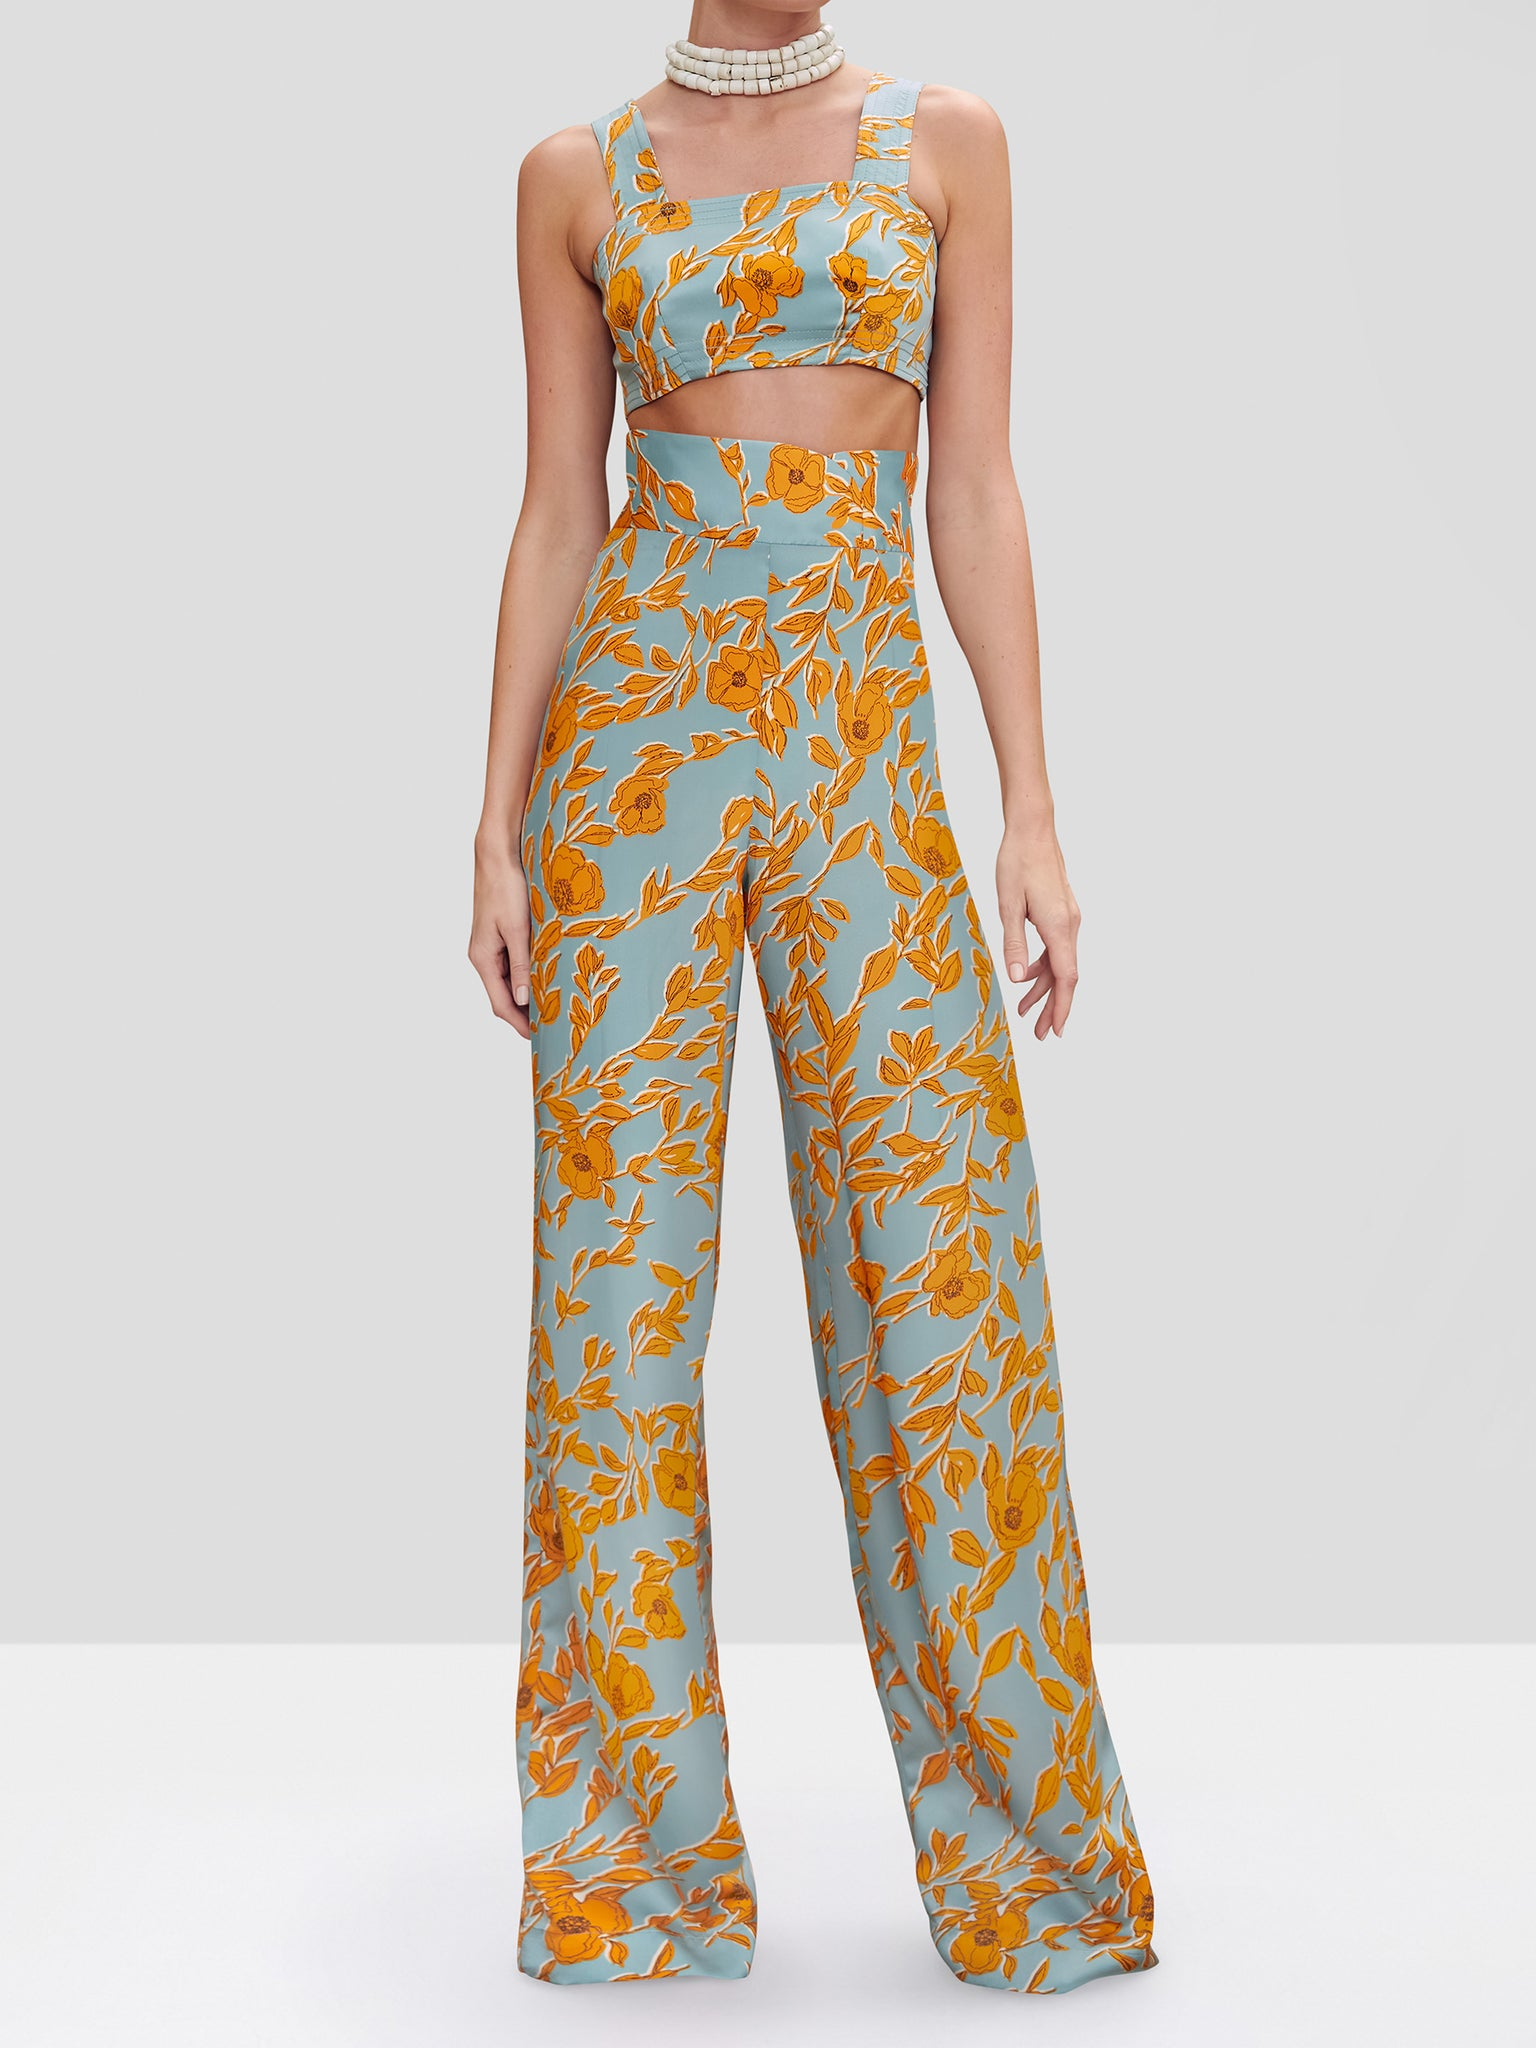 The Olan Pant in Water Garden from the Pre Fall 2020 Ready To Wear Collection. A high waist floral printed pant with belt.